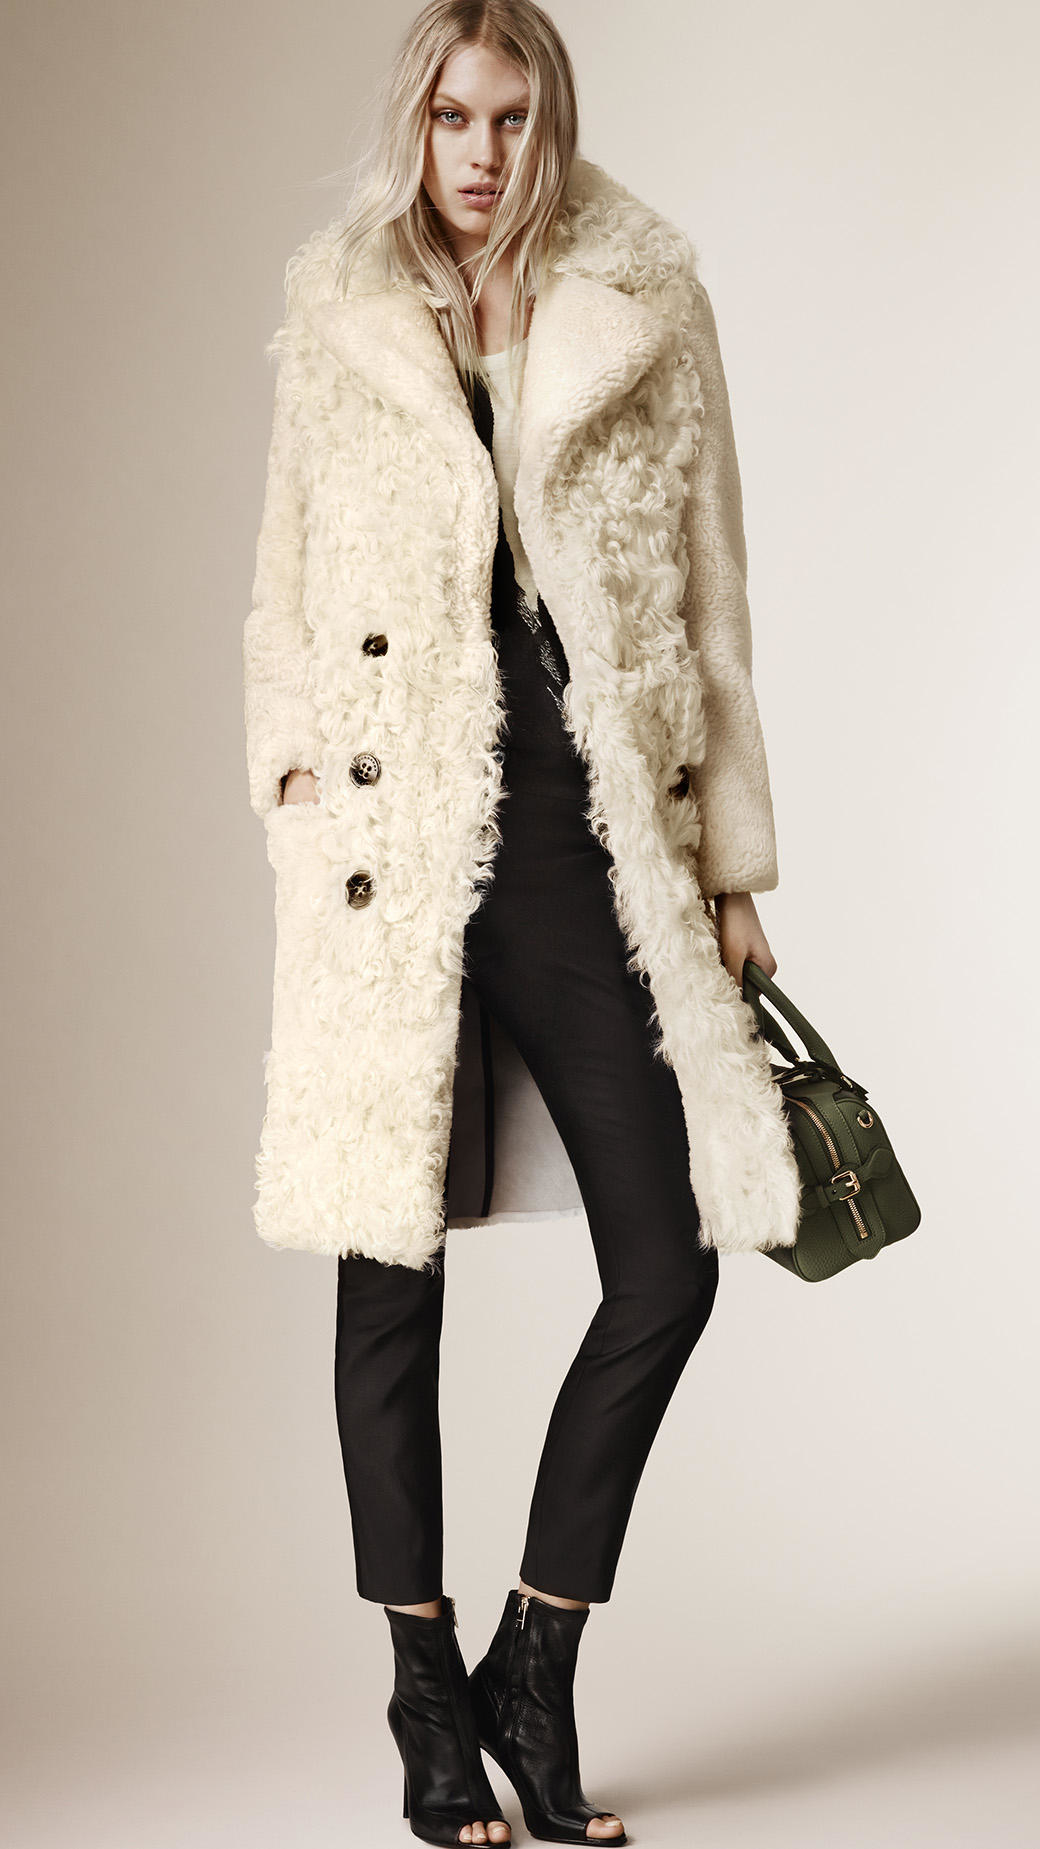 Burberry Fitted Contrast Shearling Coat in White | Lyst